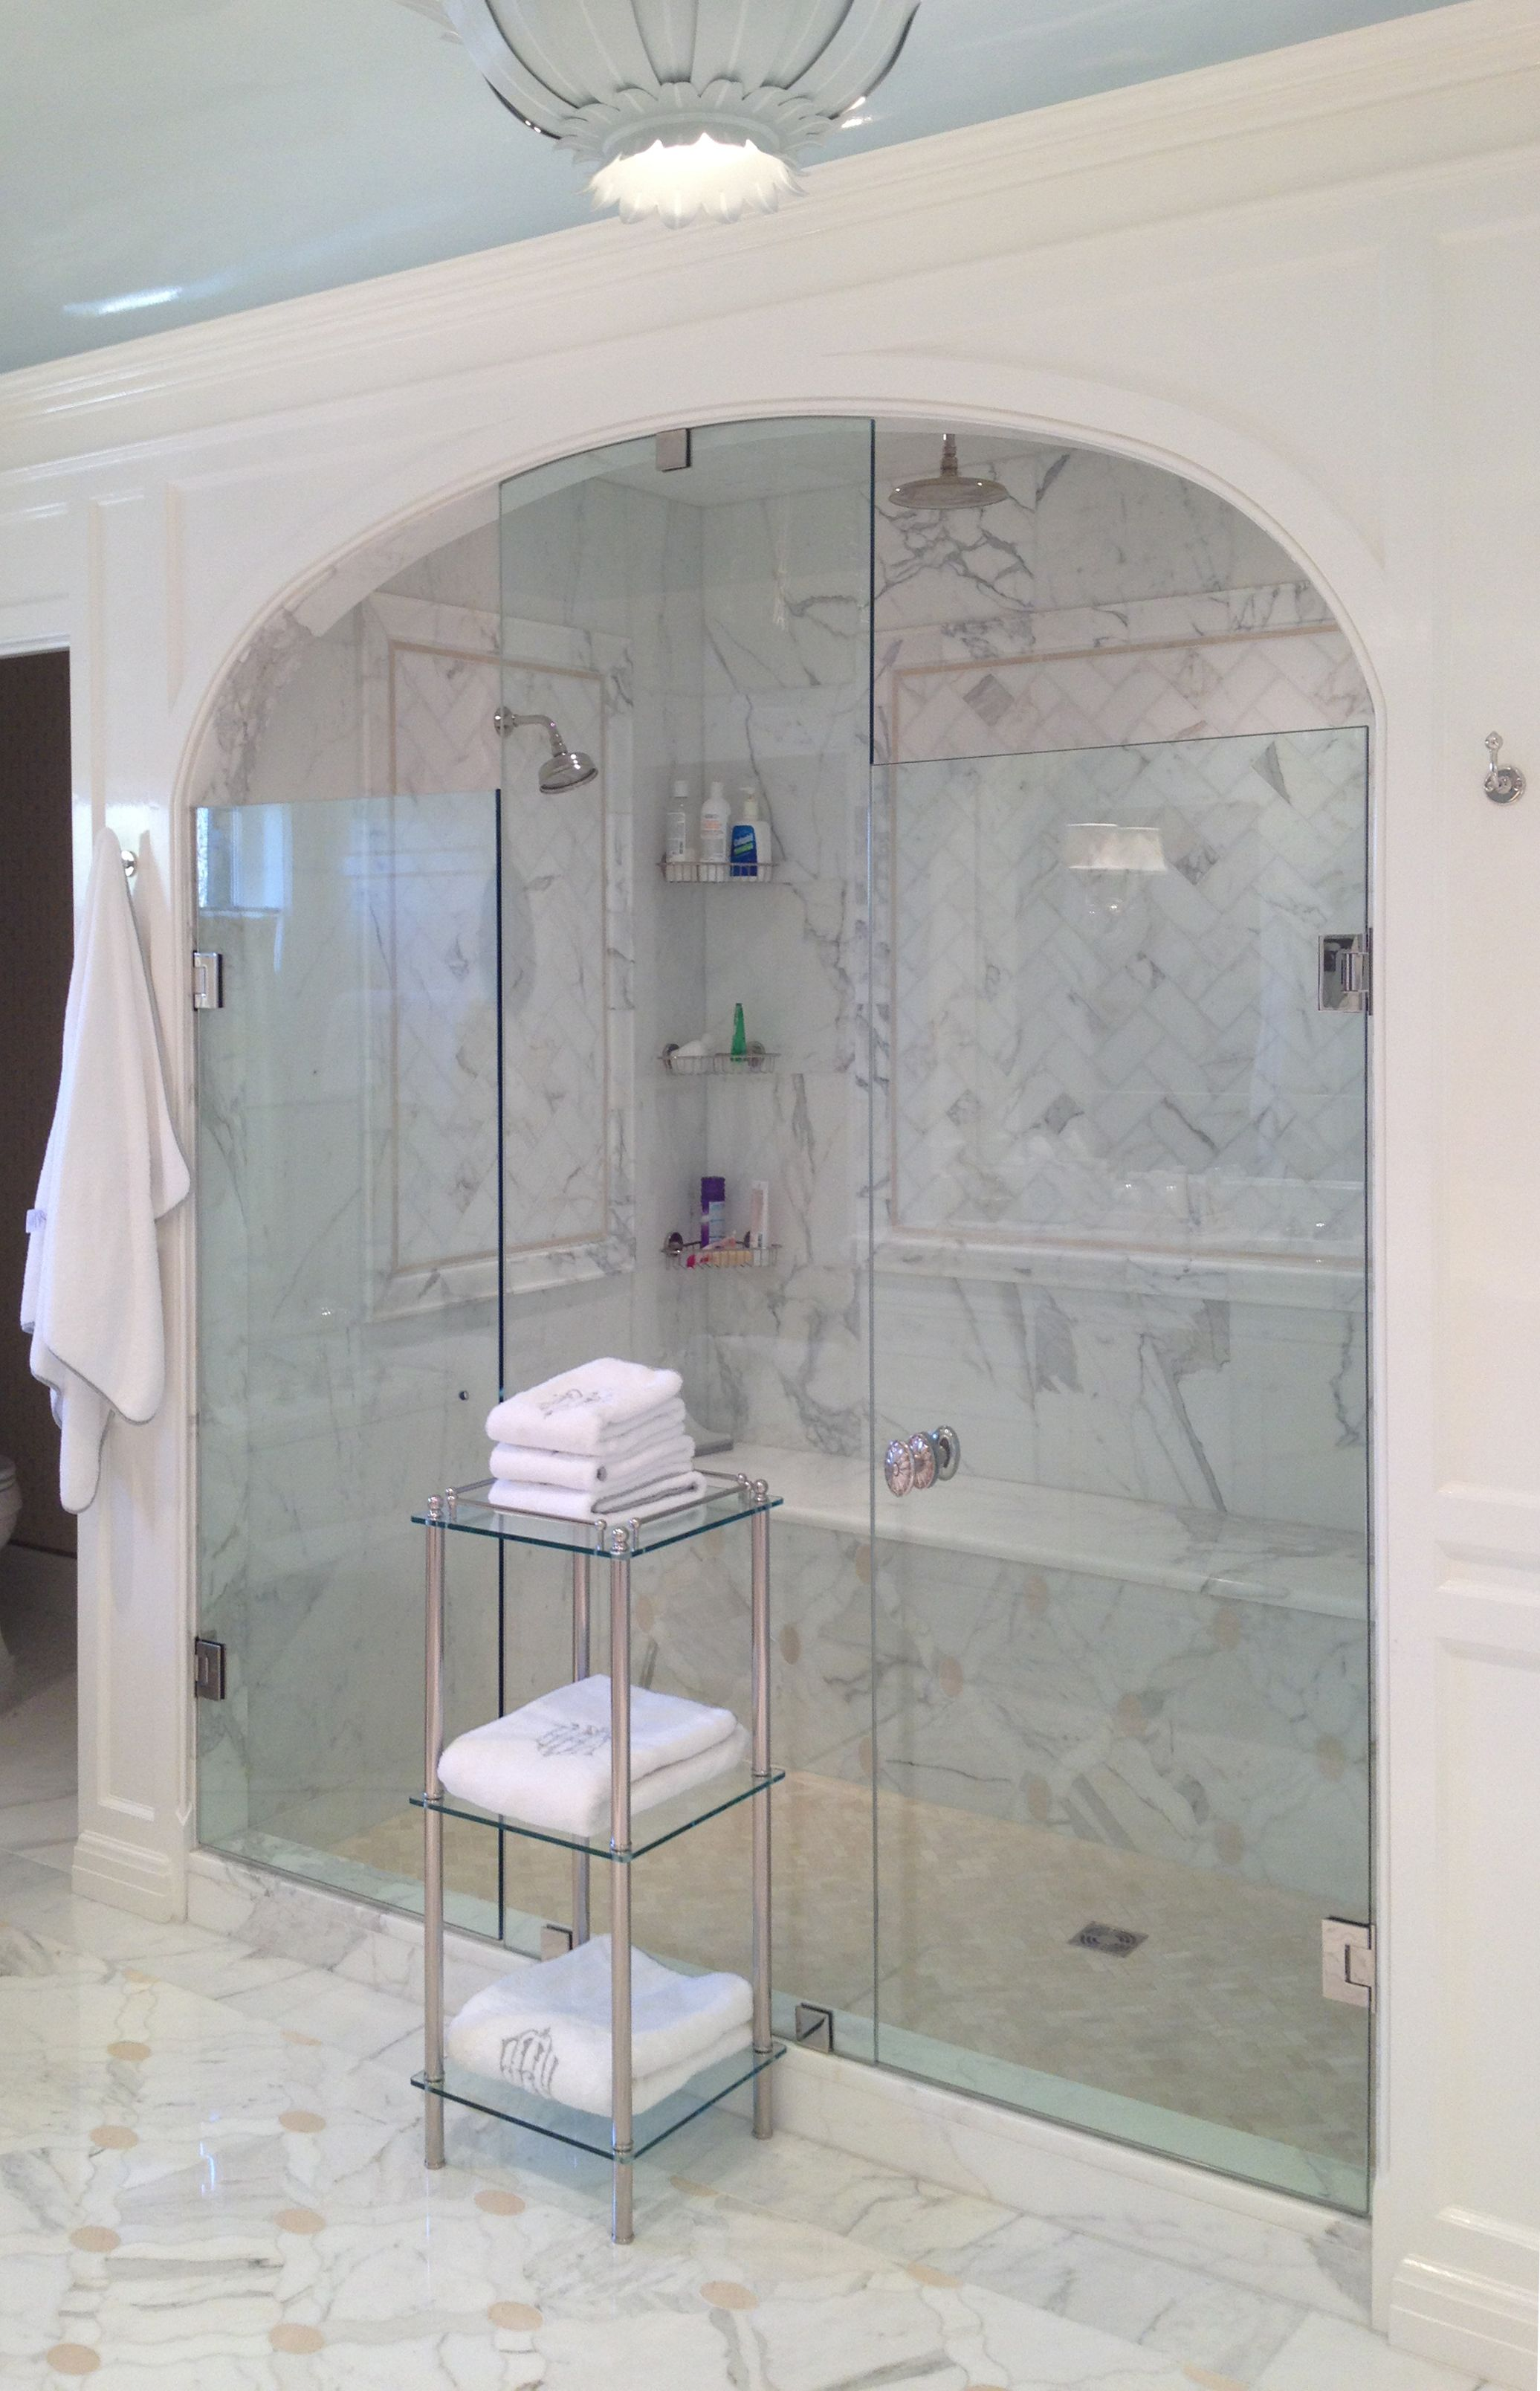 House Beautiful Bathrooms: Pin By Toilet Saver On Beautiful Bathrooms Shared By